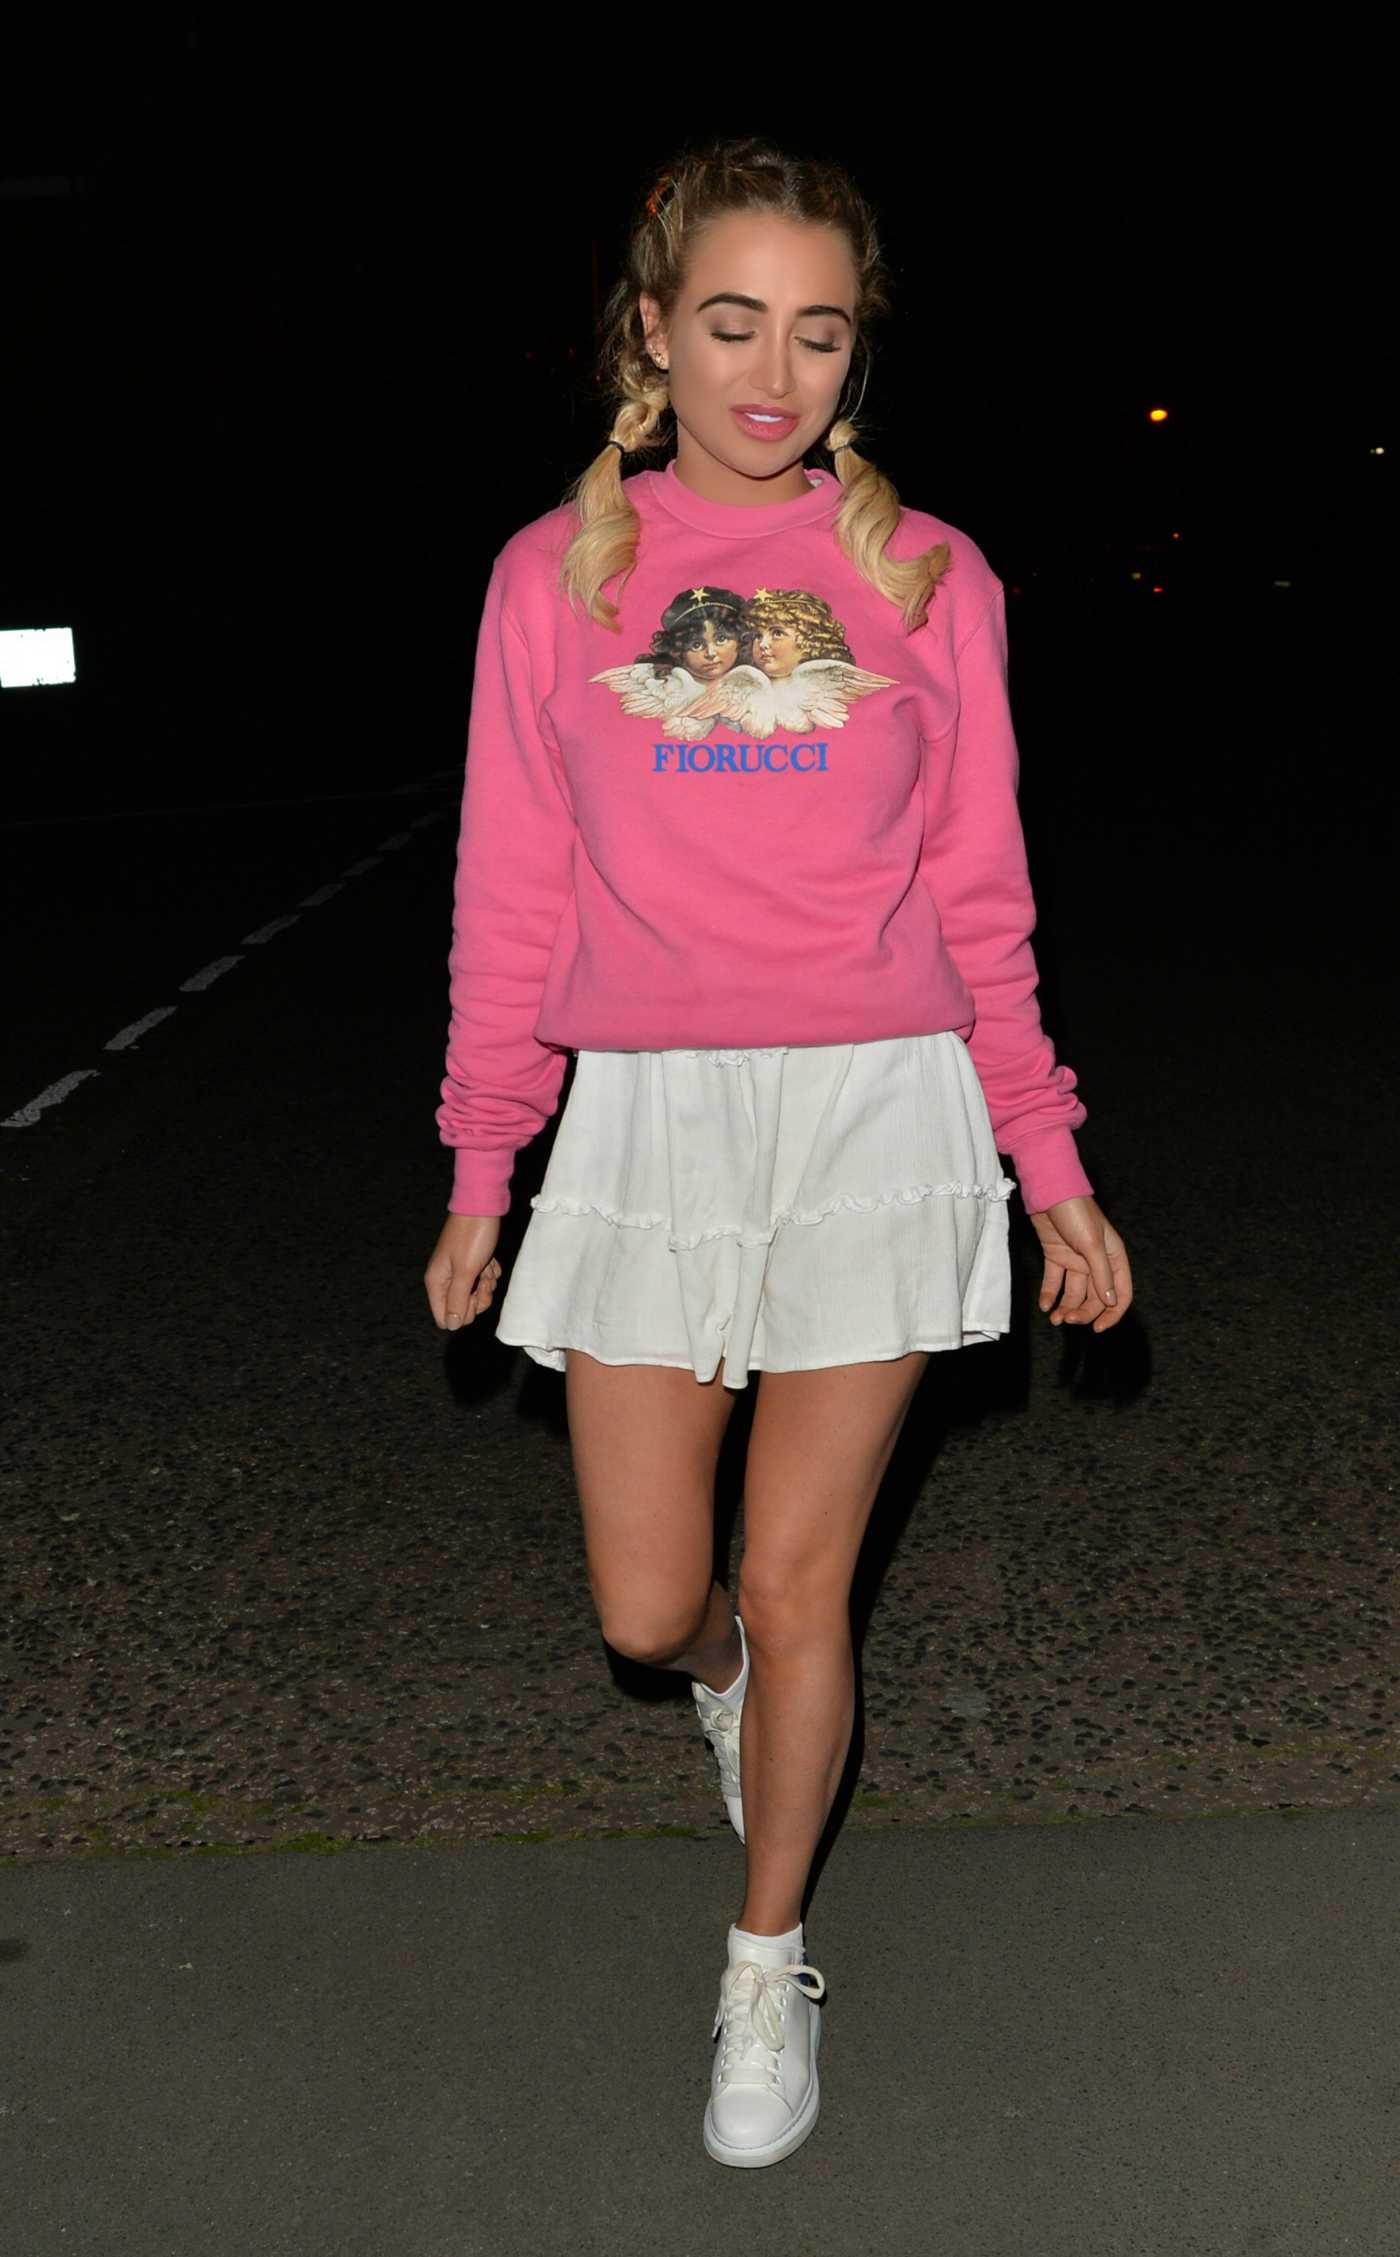 Georgia Harrison in a Pink Sweatshirt Arrives at Soho House in London 08/12/2019